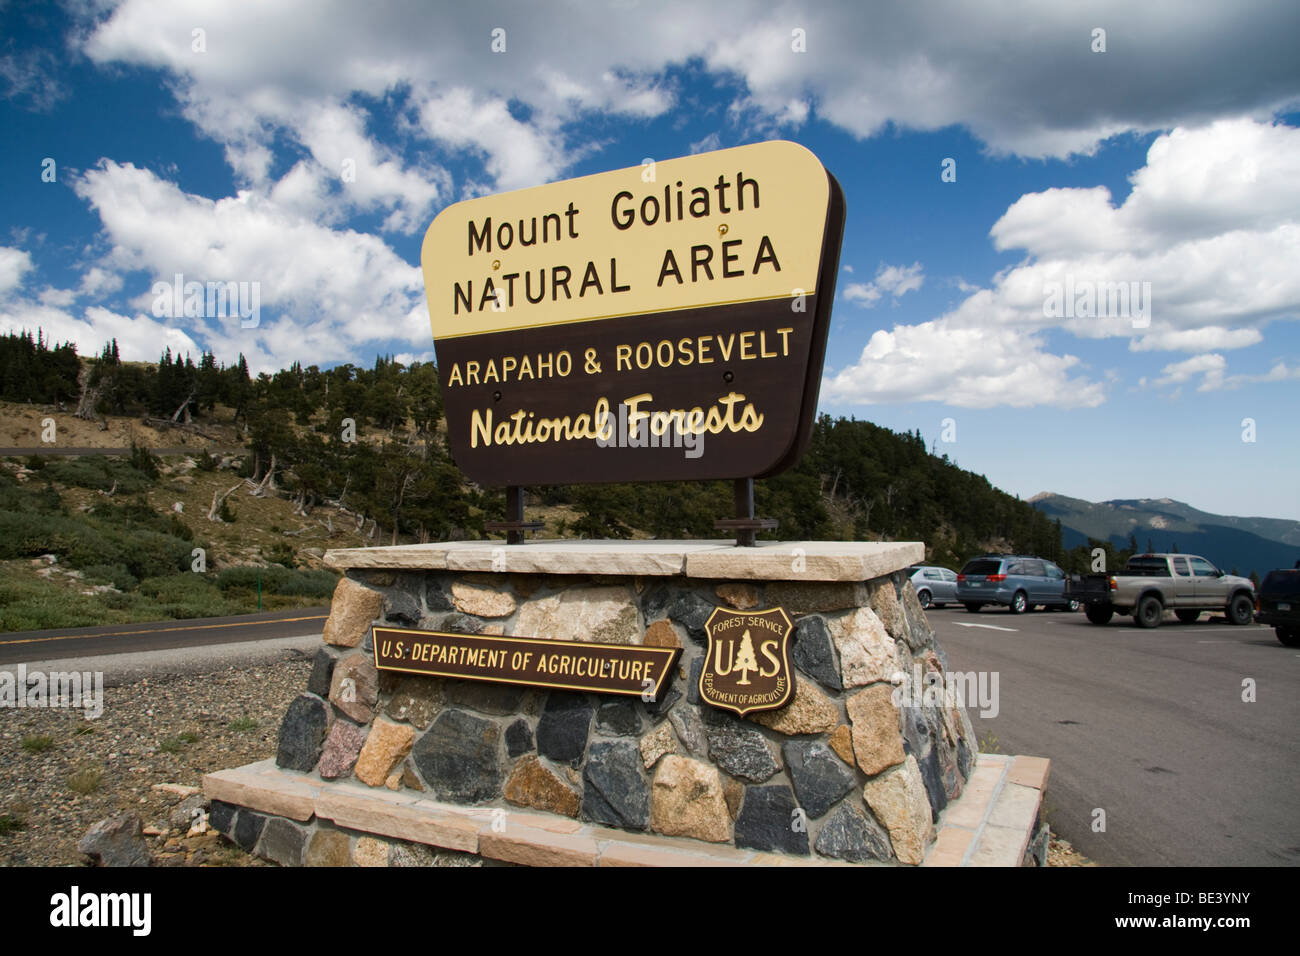 Mount Goliath Natural Area, Arapaho and Roosevelt National Forests, Colorado, USA - Stock Image